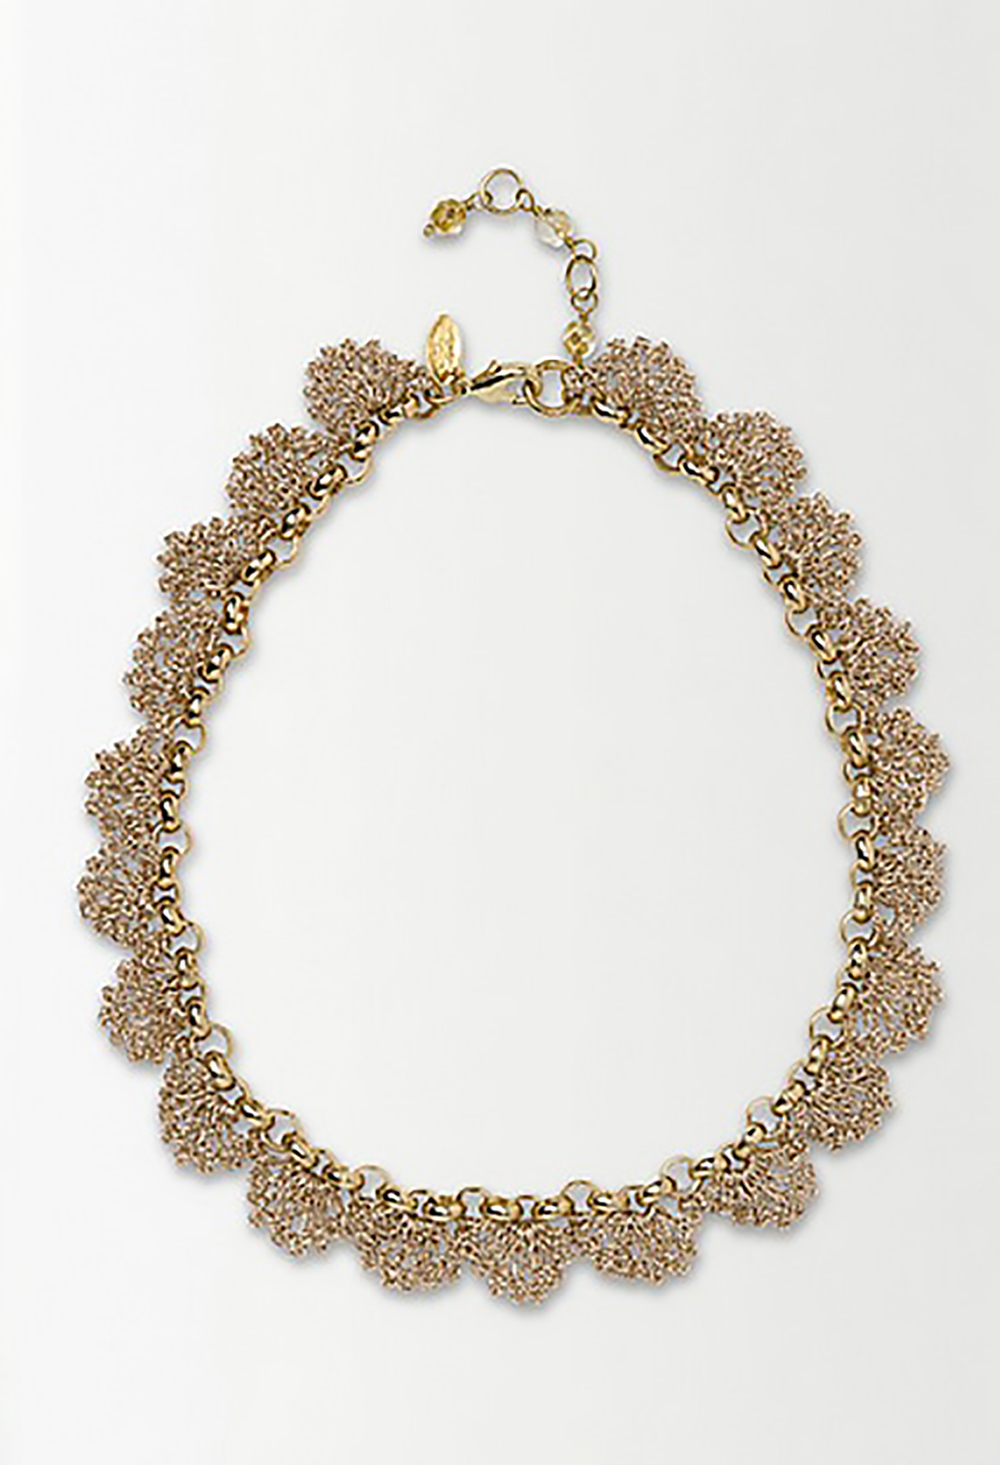 anthropologie st erasmus crochet glimmer necklace love yourself 1500.jpg